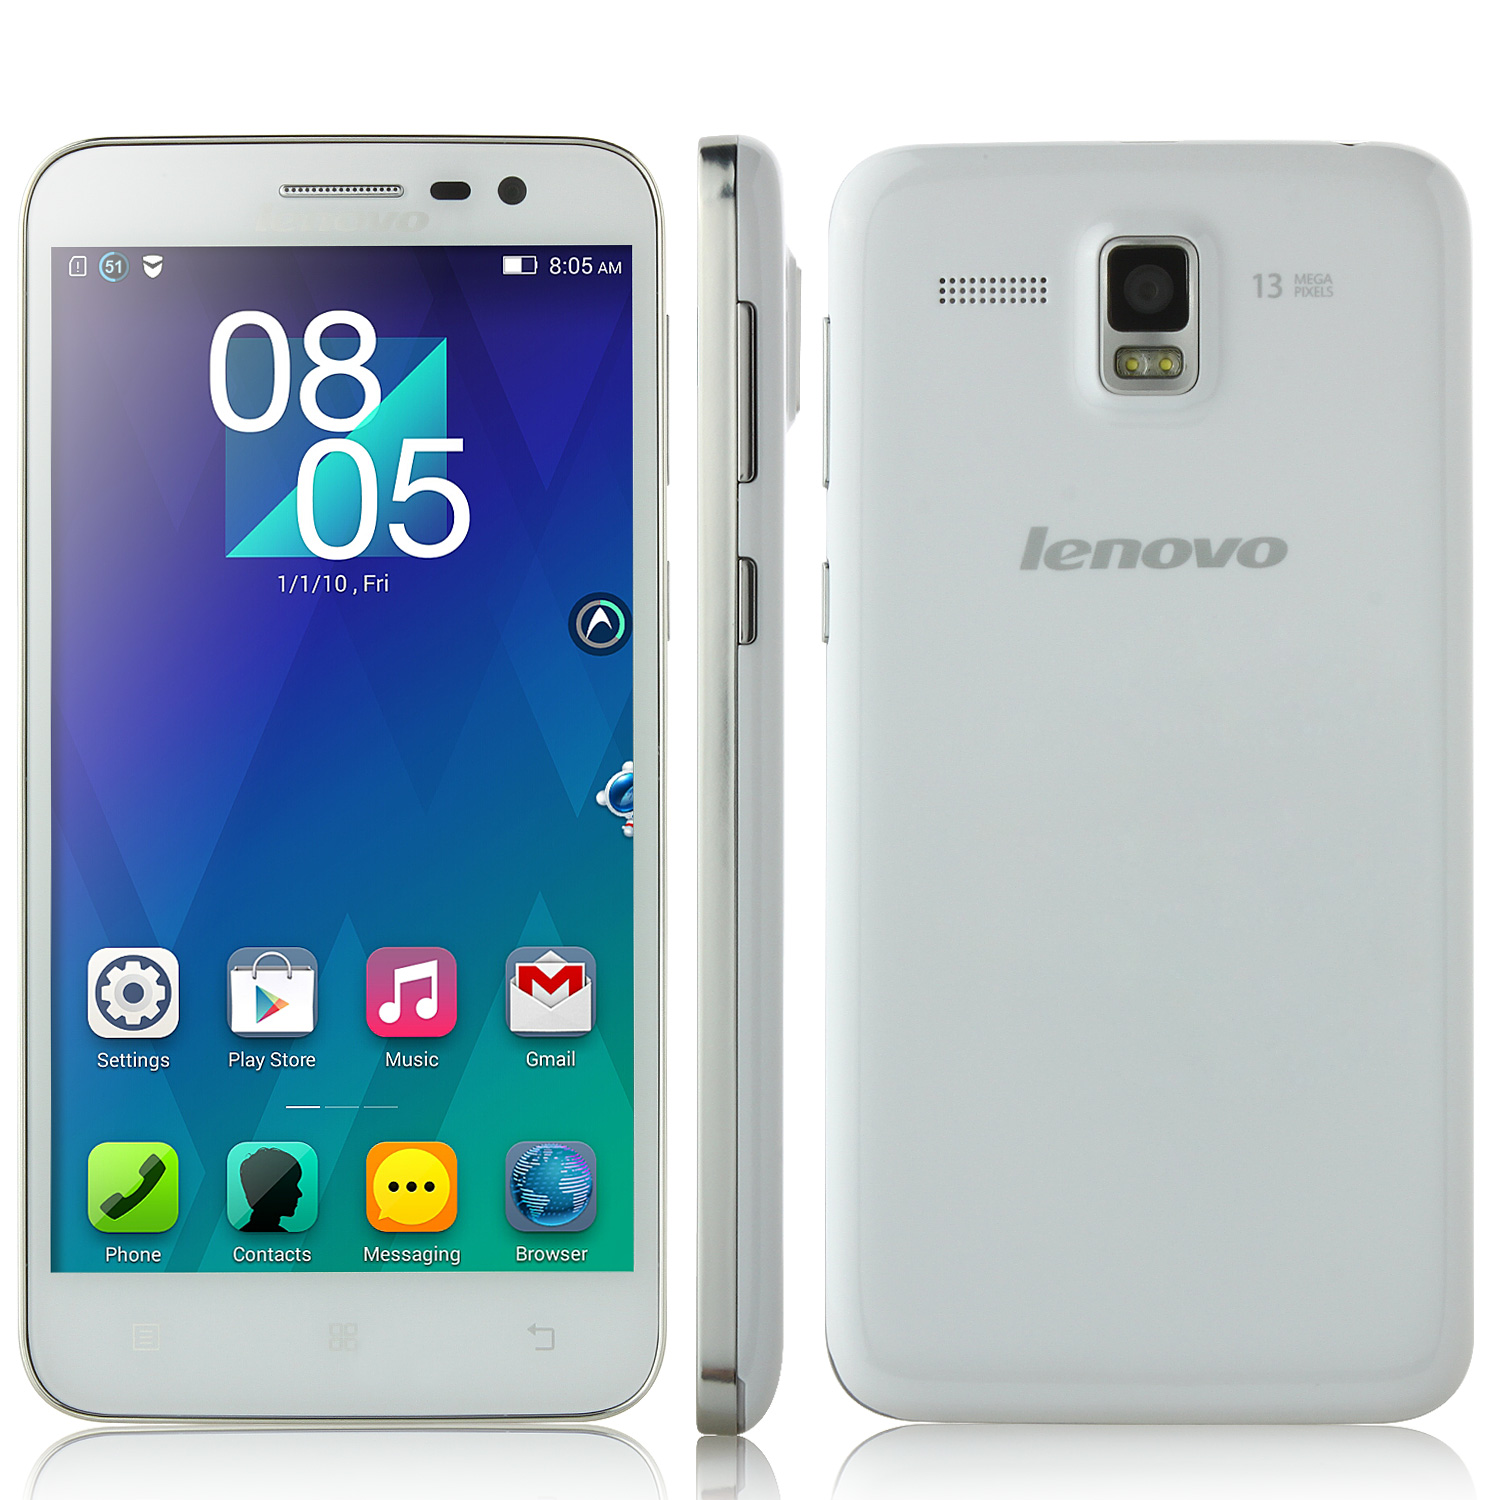 Lenovo A808T 4G TD-LTE Smartphone Android 4.4 MTK6592 5.0 Inch HD Screen - White